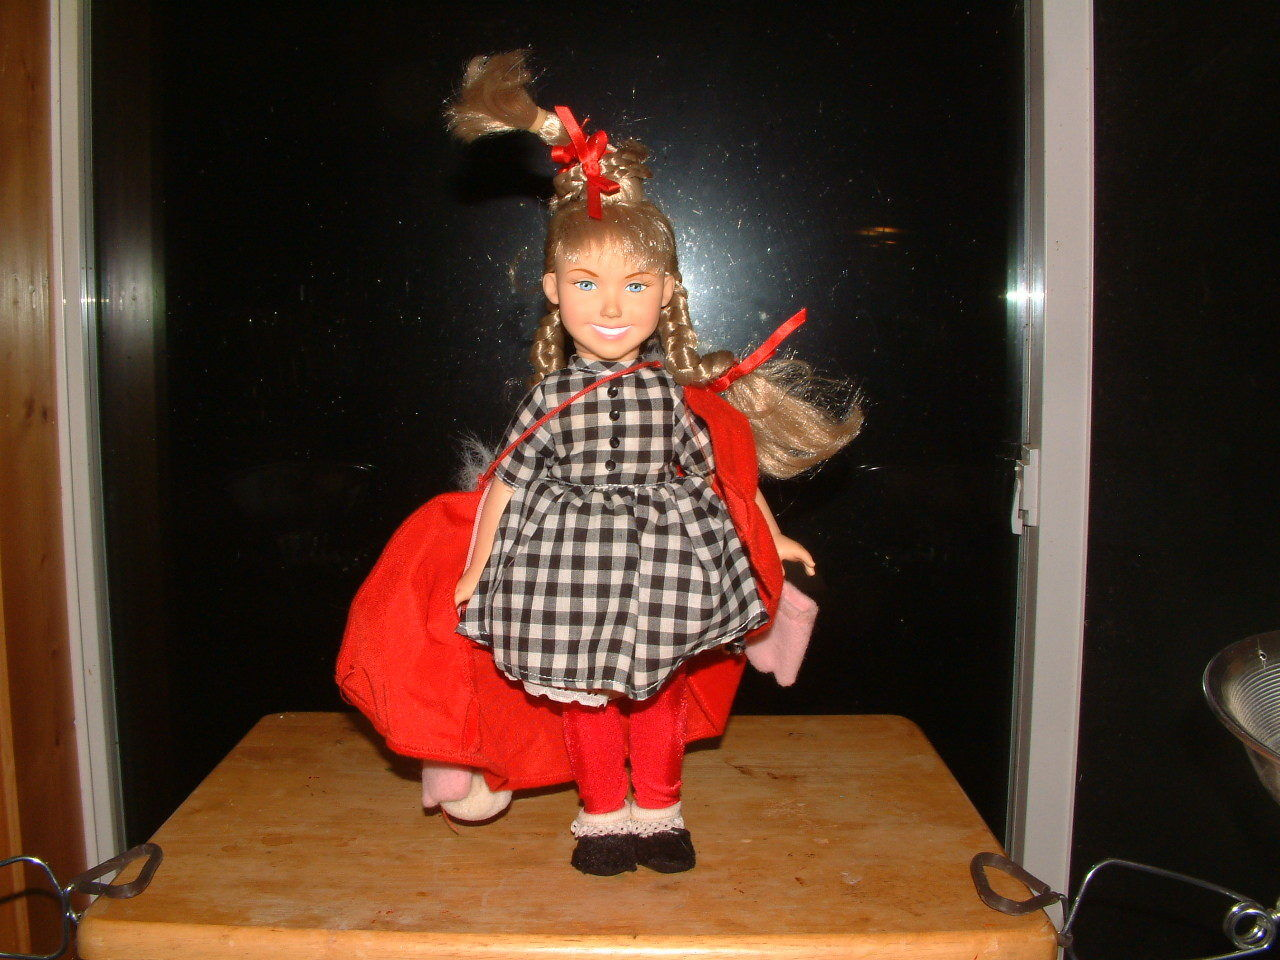 Dr. Seuss - How The Grinch Stole Christmas - Cindy Lou Who - Doll